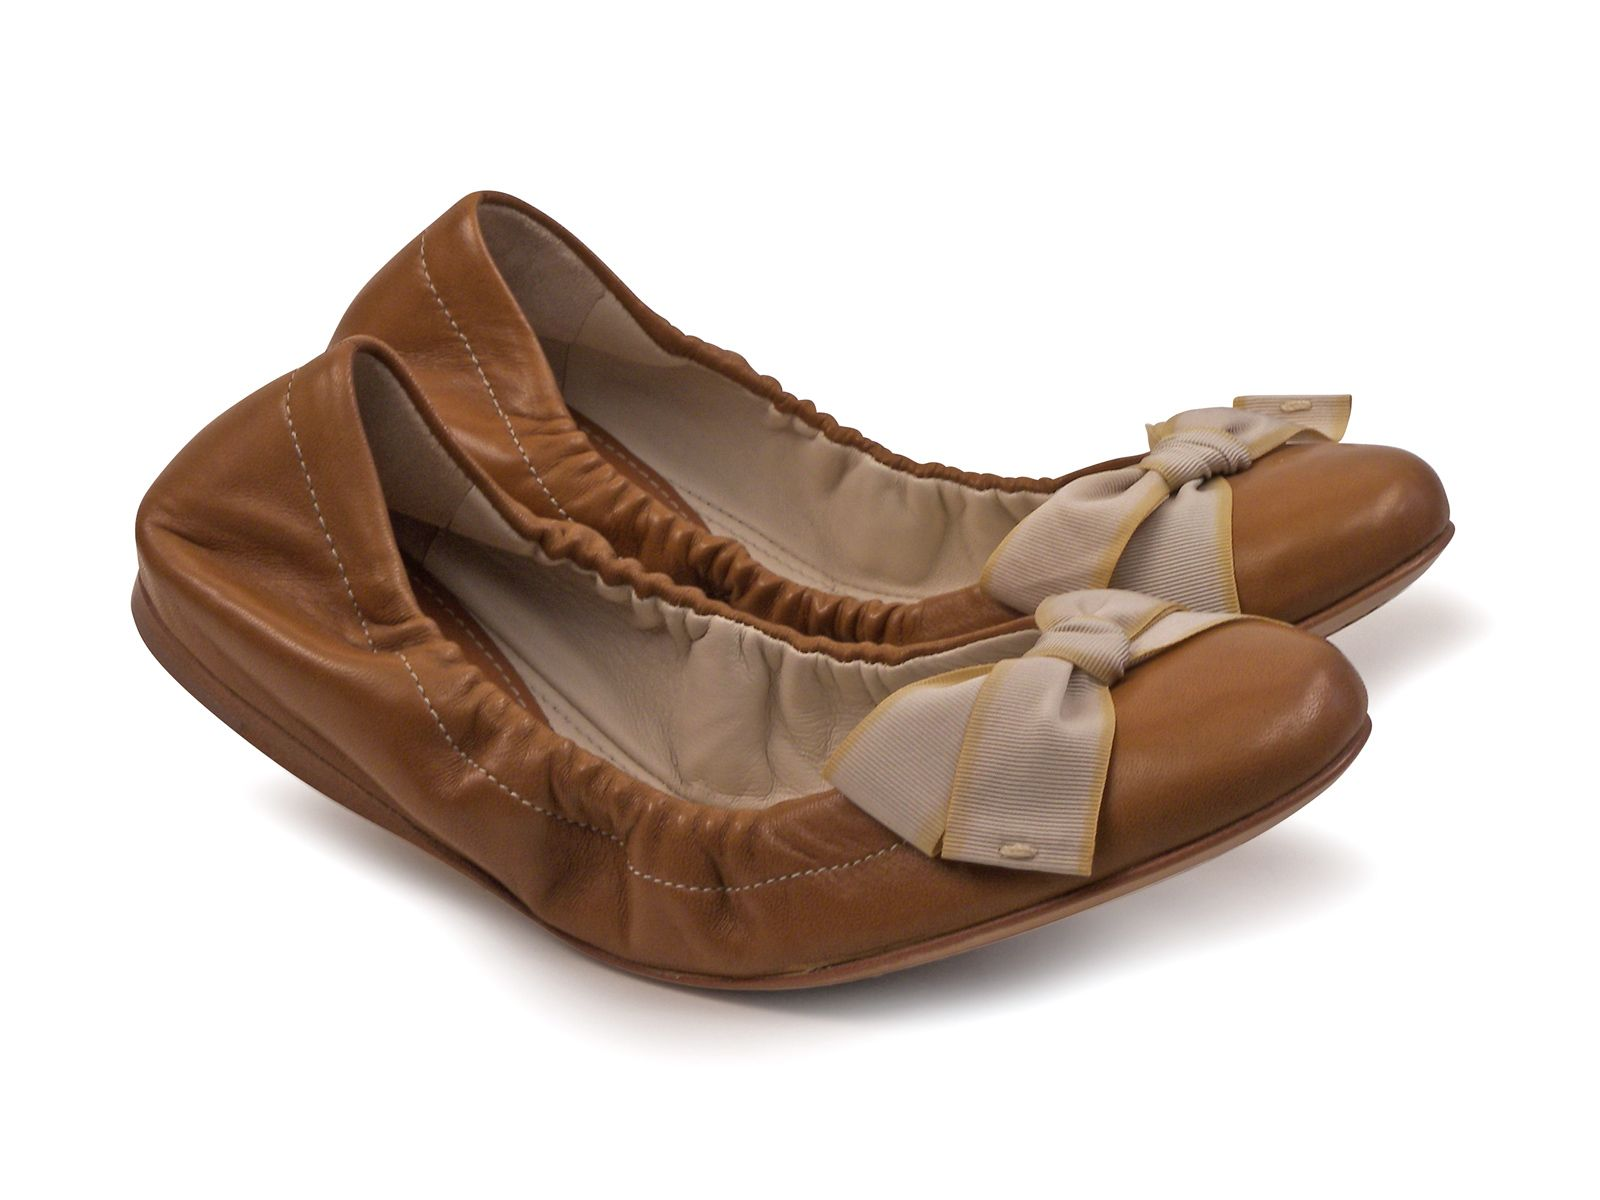 8fb60f07c0e Car Shoe women s ballerina in cuir color Soft leather - Italian Boutique  €156